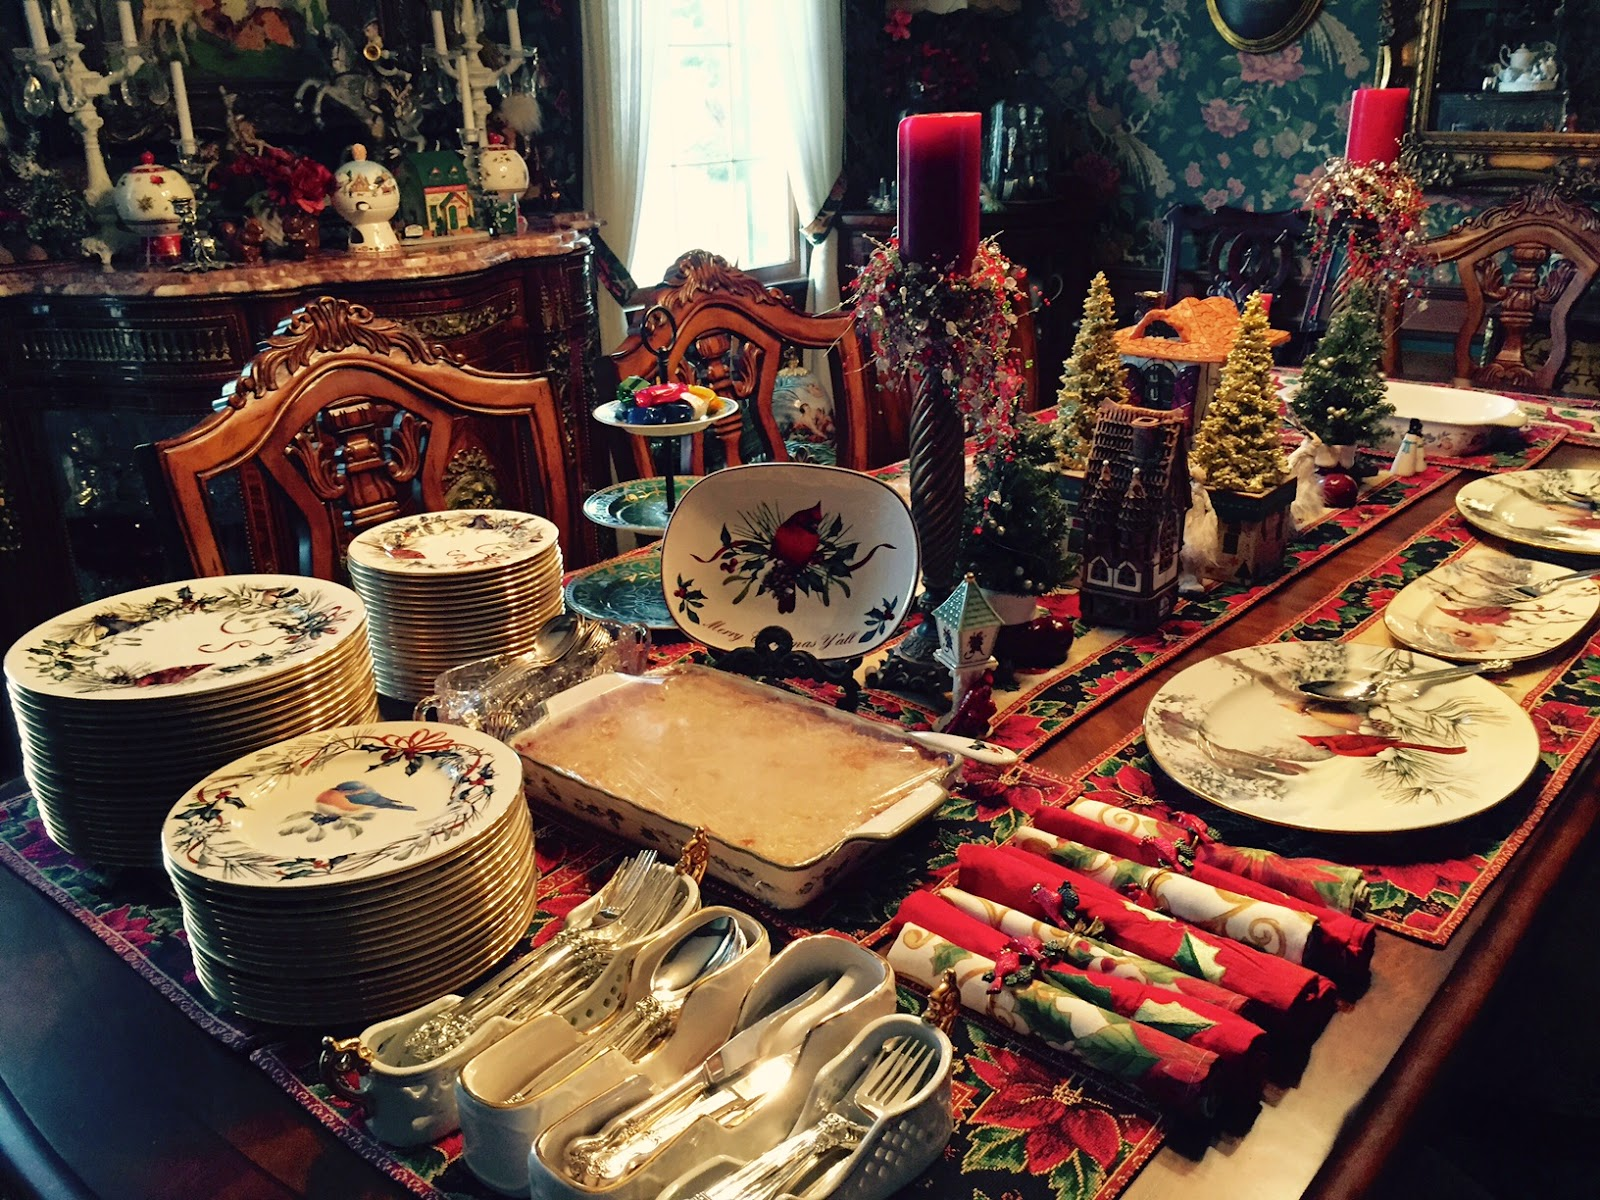 Christines home and travel adventures christmas party 12 19 2014 i used my favorite christmas dinnerware by lenox winter greetings i have a big set a complete setting for at least 20 people plus serving pieces so i m4hsunfo